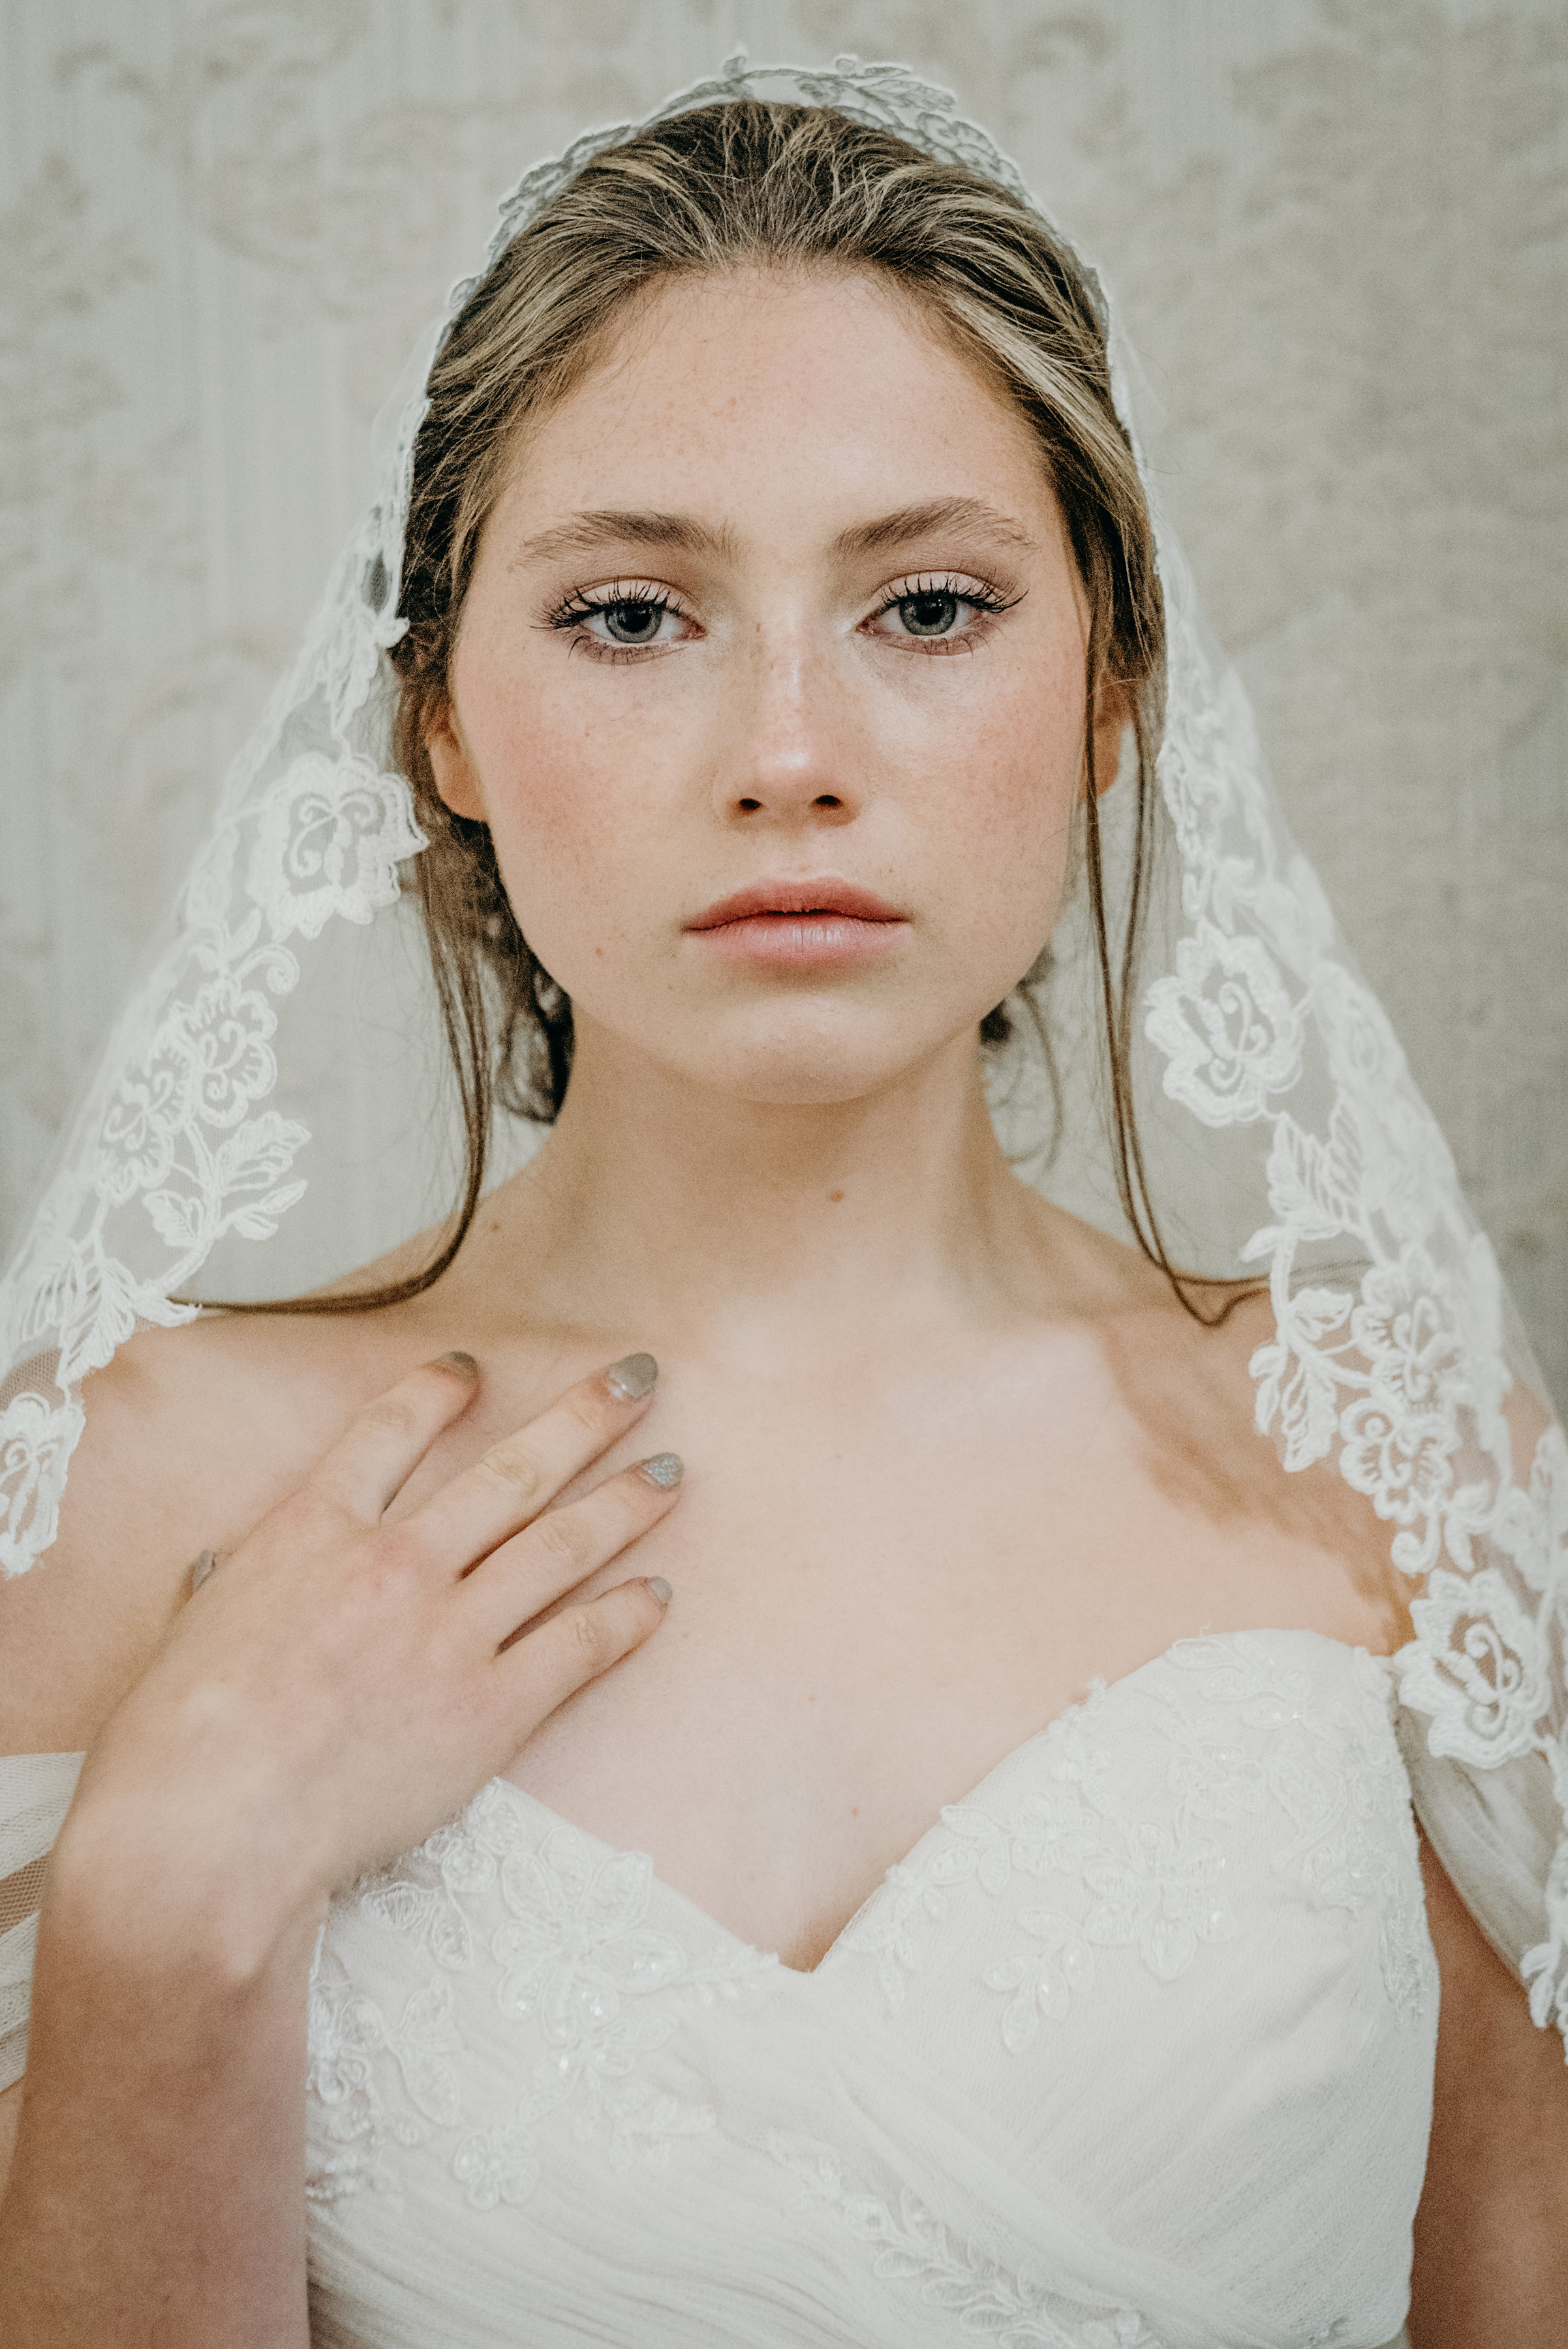 Vintage Lux wedding makeup and veil